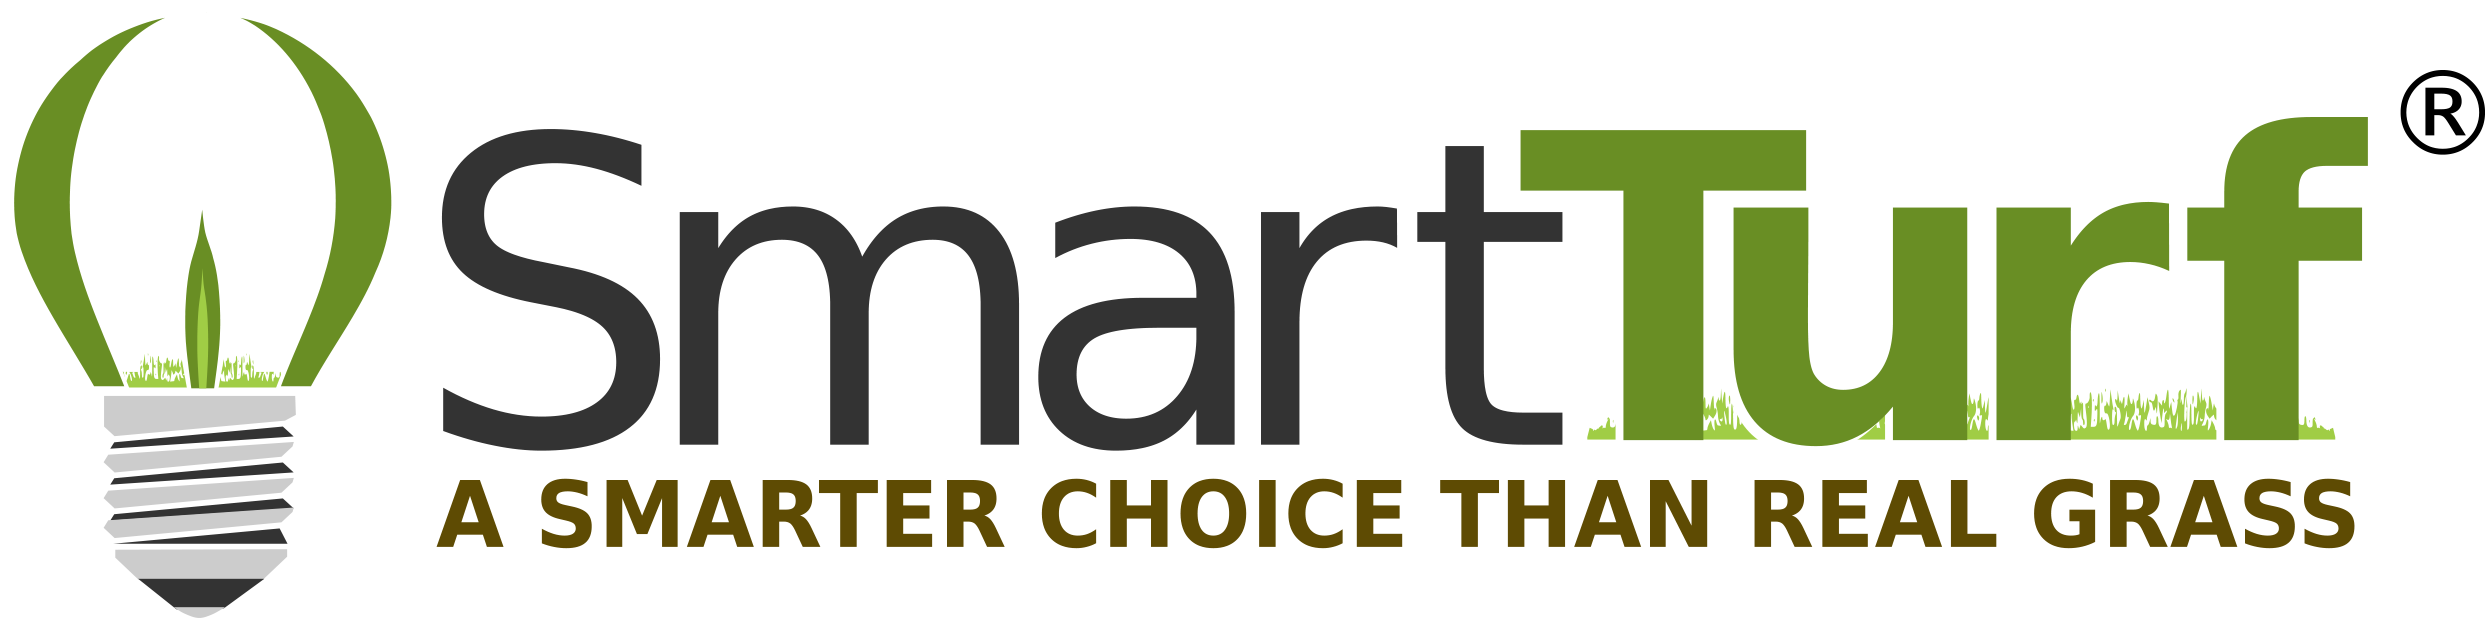 LOGO_SmartTurf_Registered_05-11-15.png